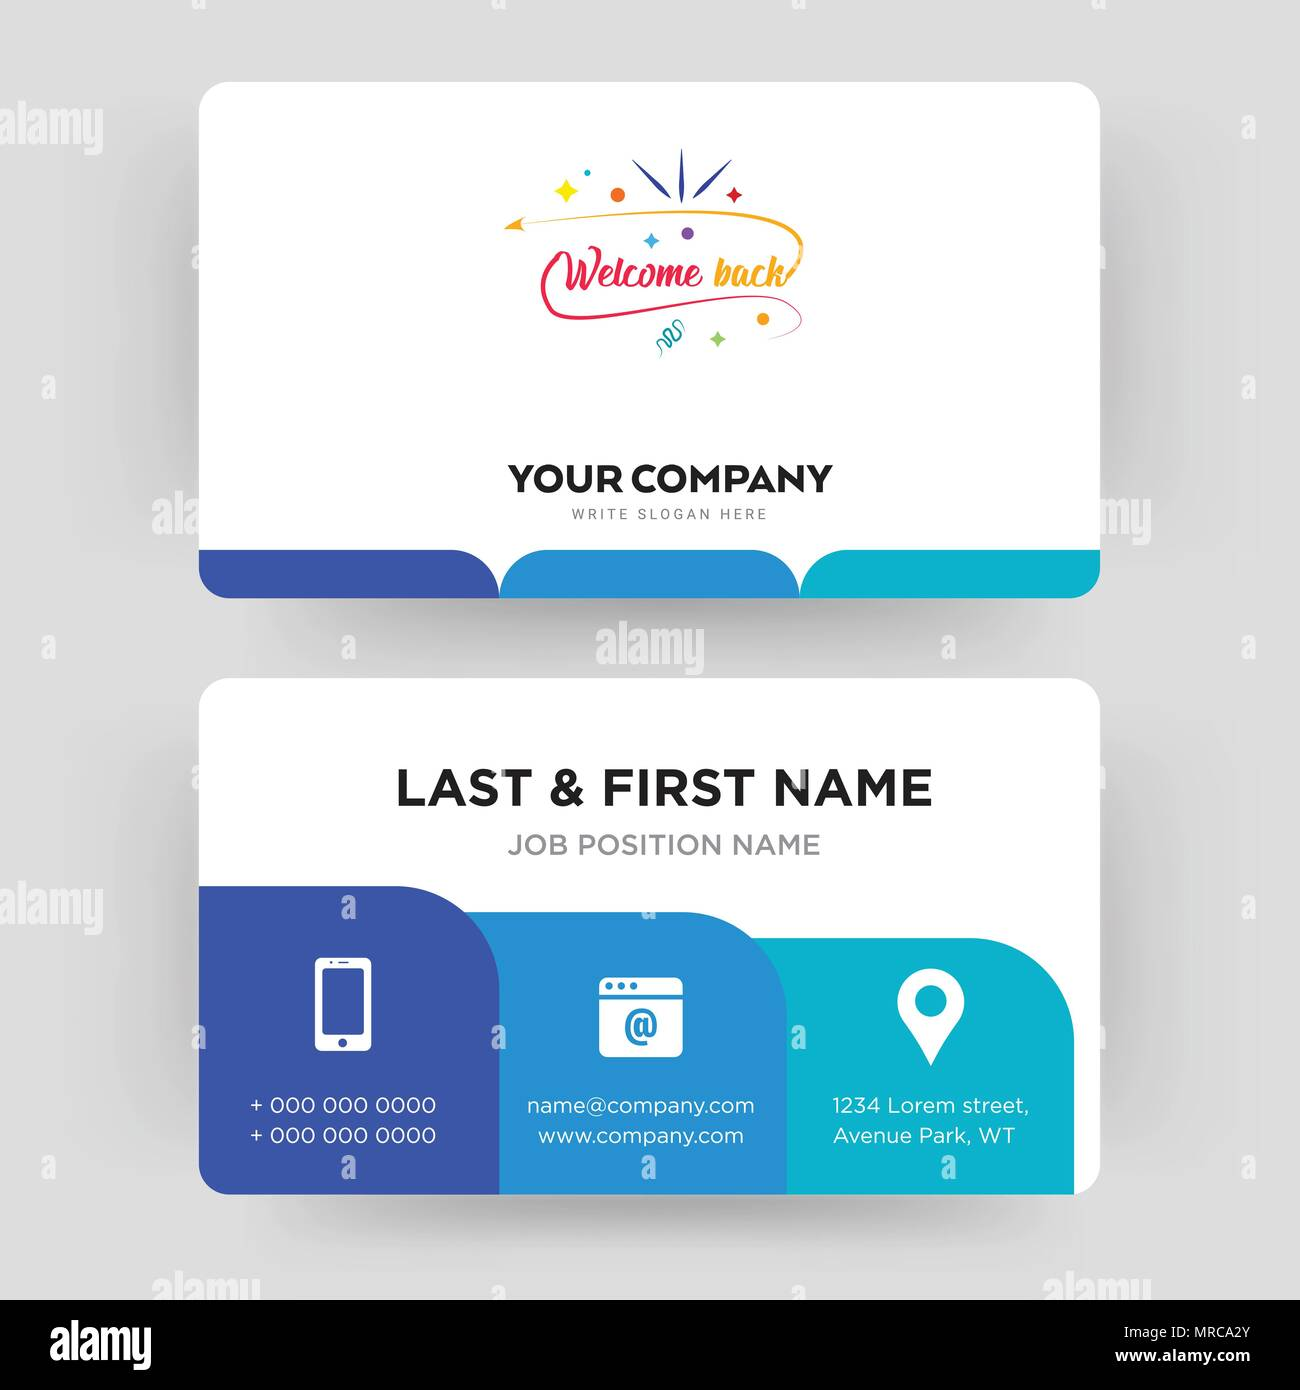 welcome back  business card design template  visiting for your company  modern creative and